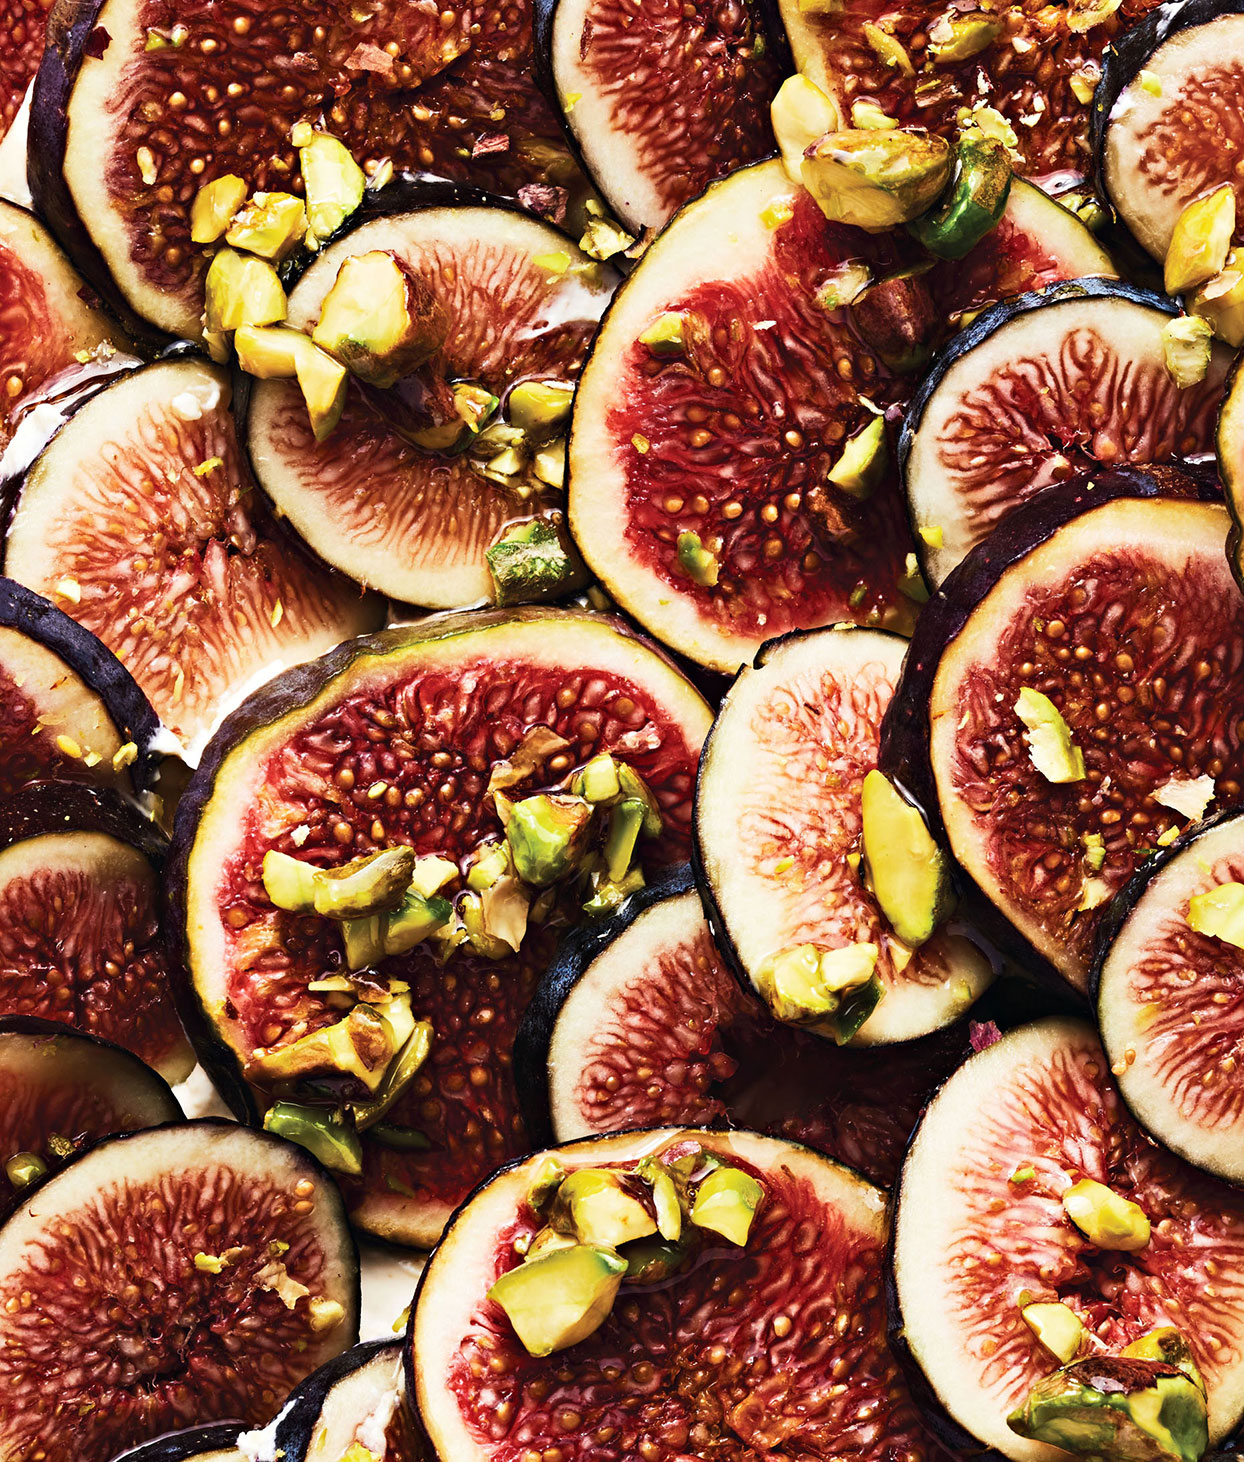 ripe fresh figs with pistachios